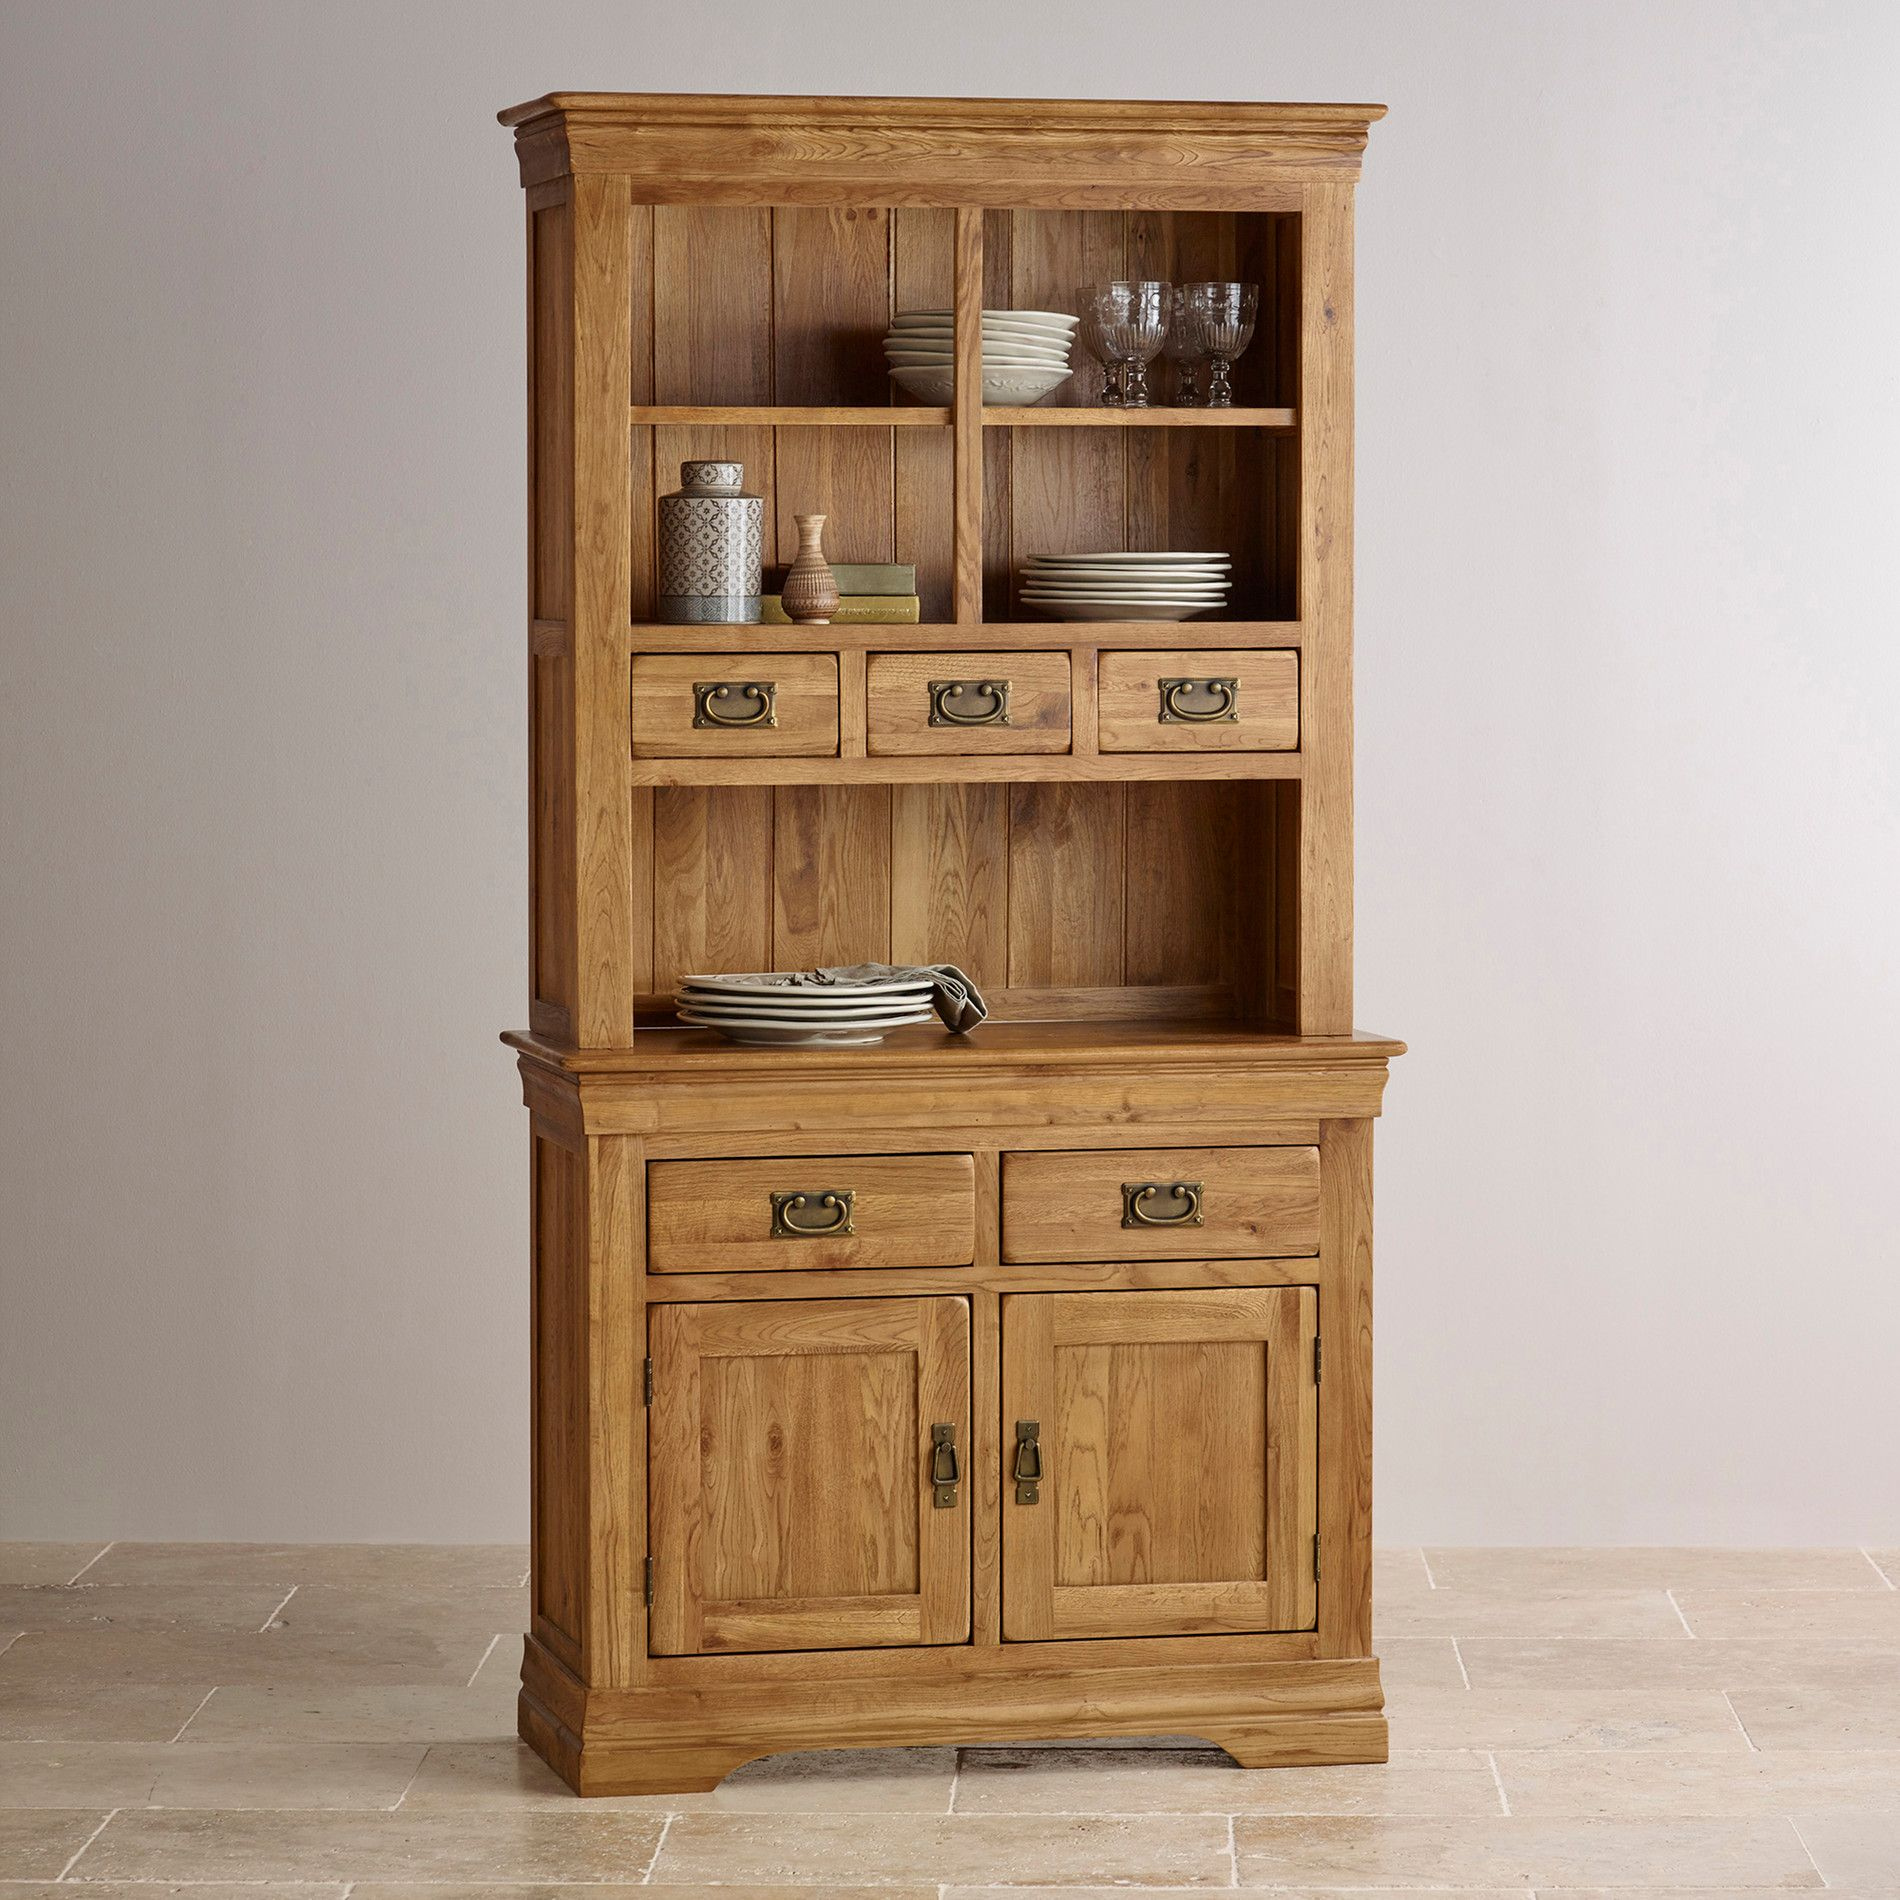 French Farmhouse Rustic Solid Oak Small Dresser in 2020